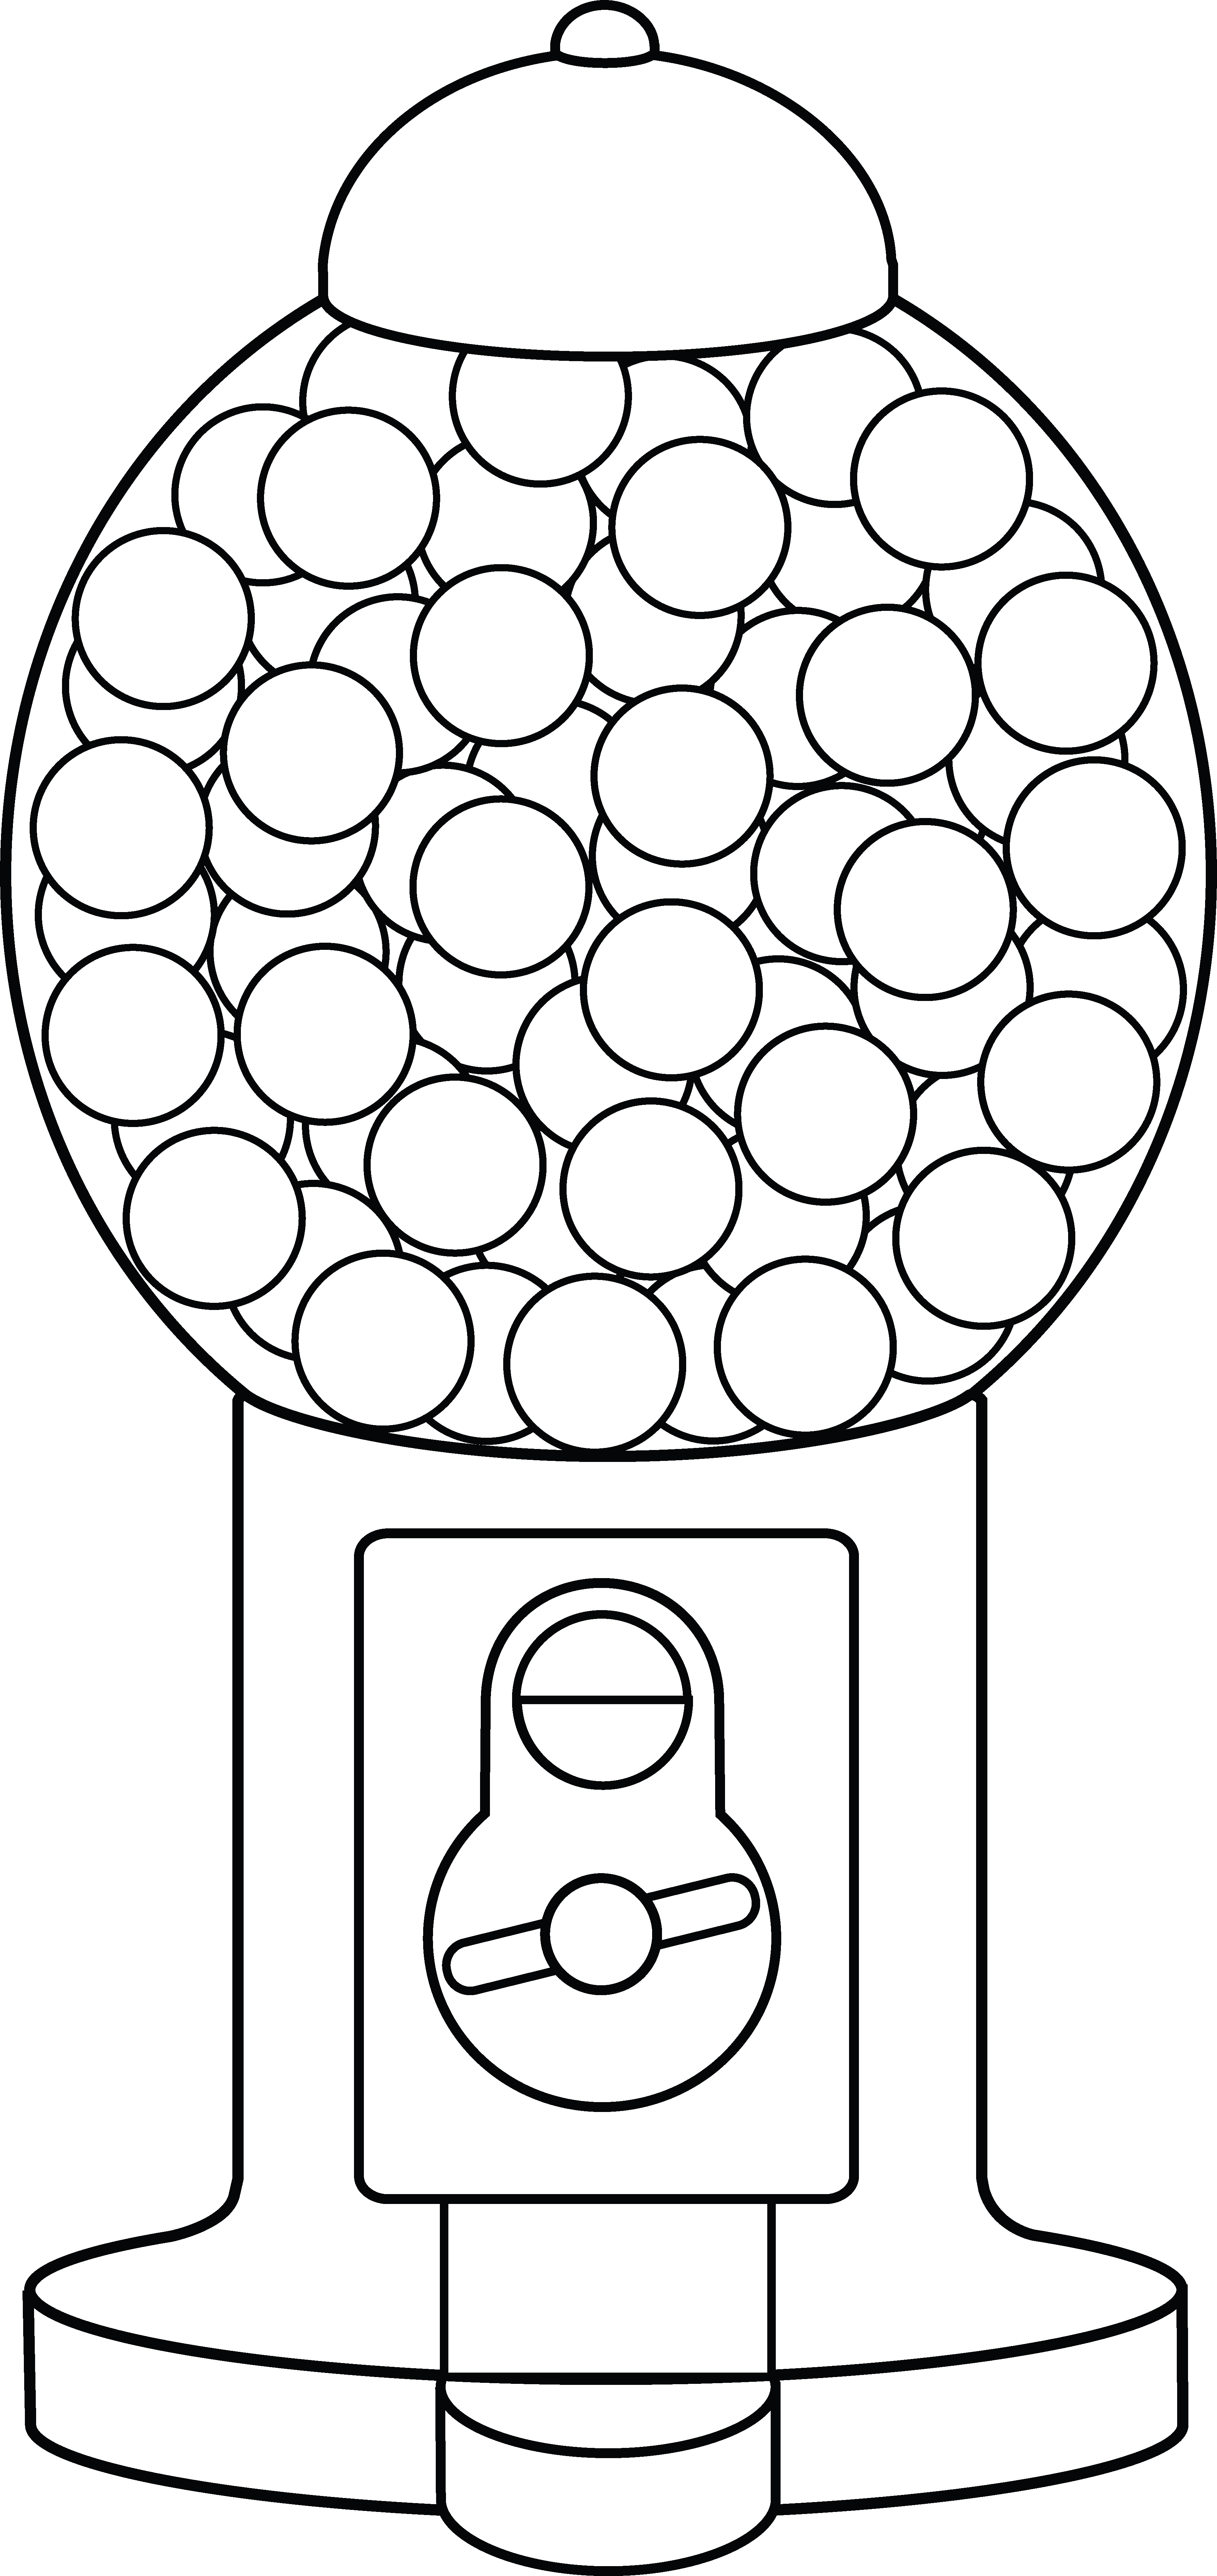 gumball machine coloring page free gumball machine coloring page gumball machine machine page coloring gumball